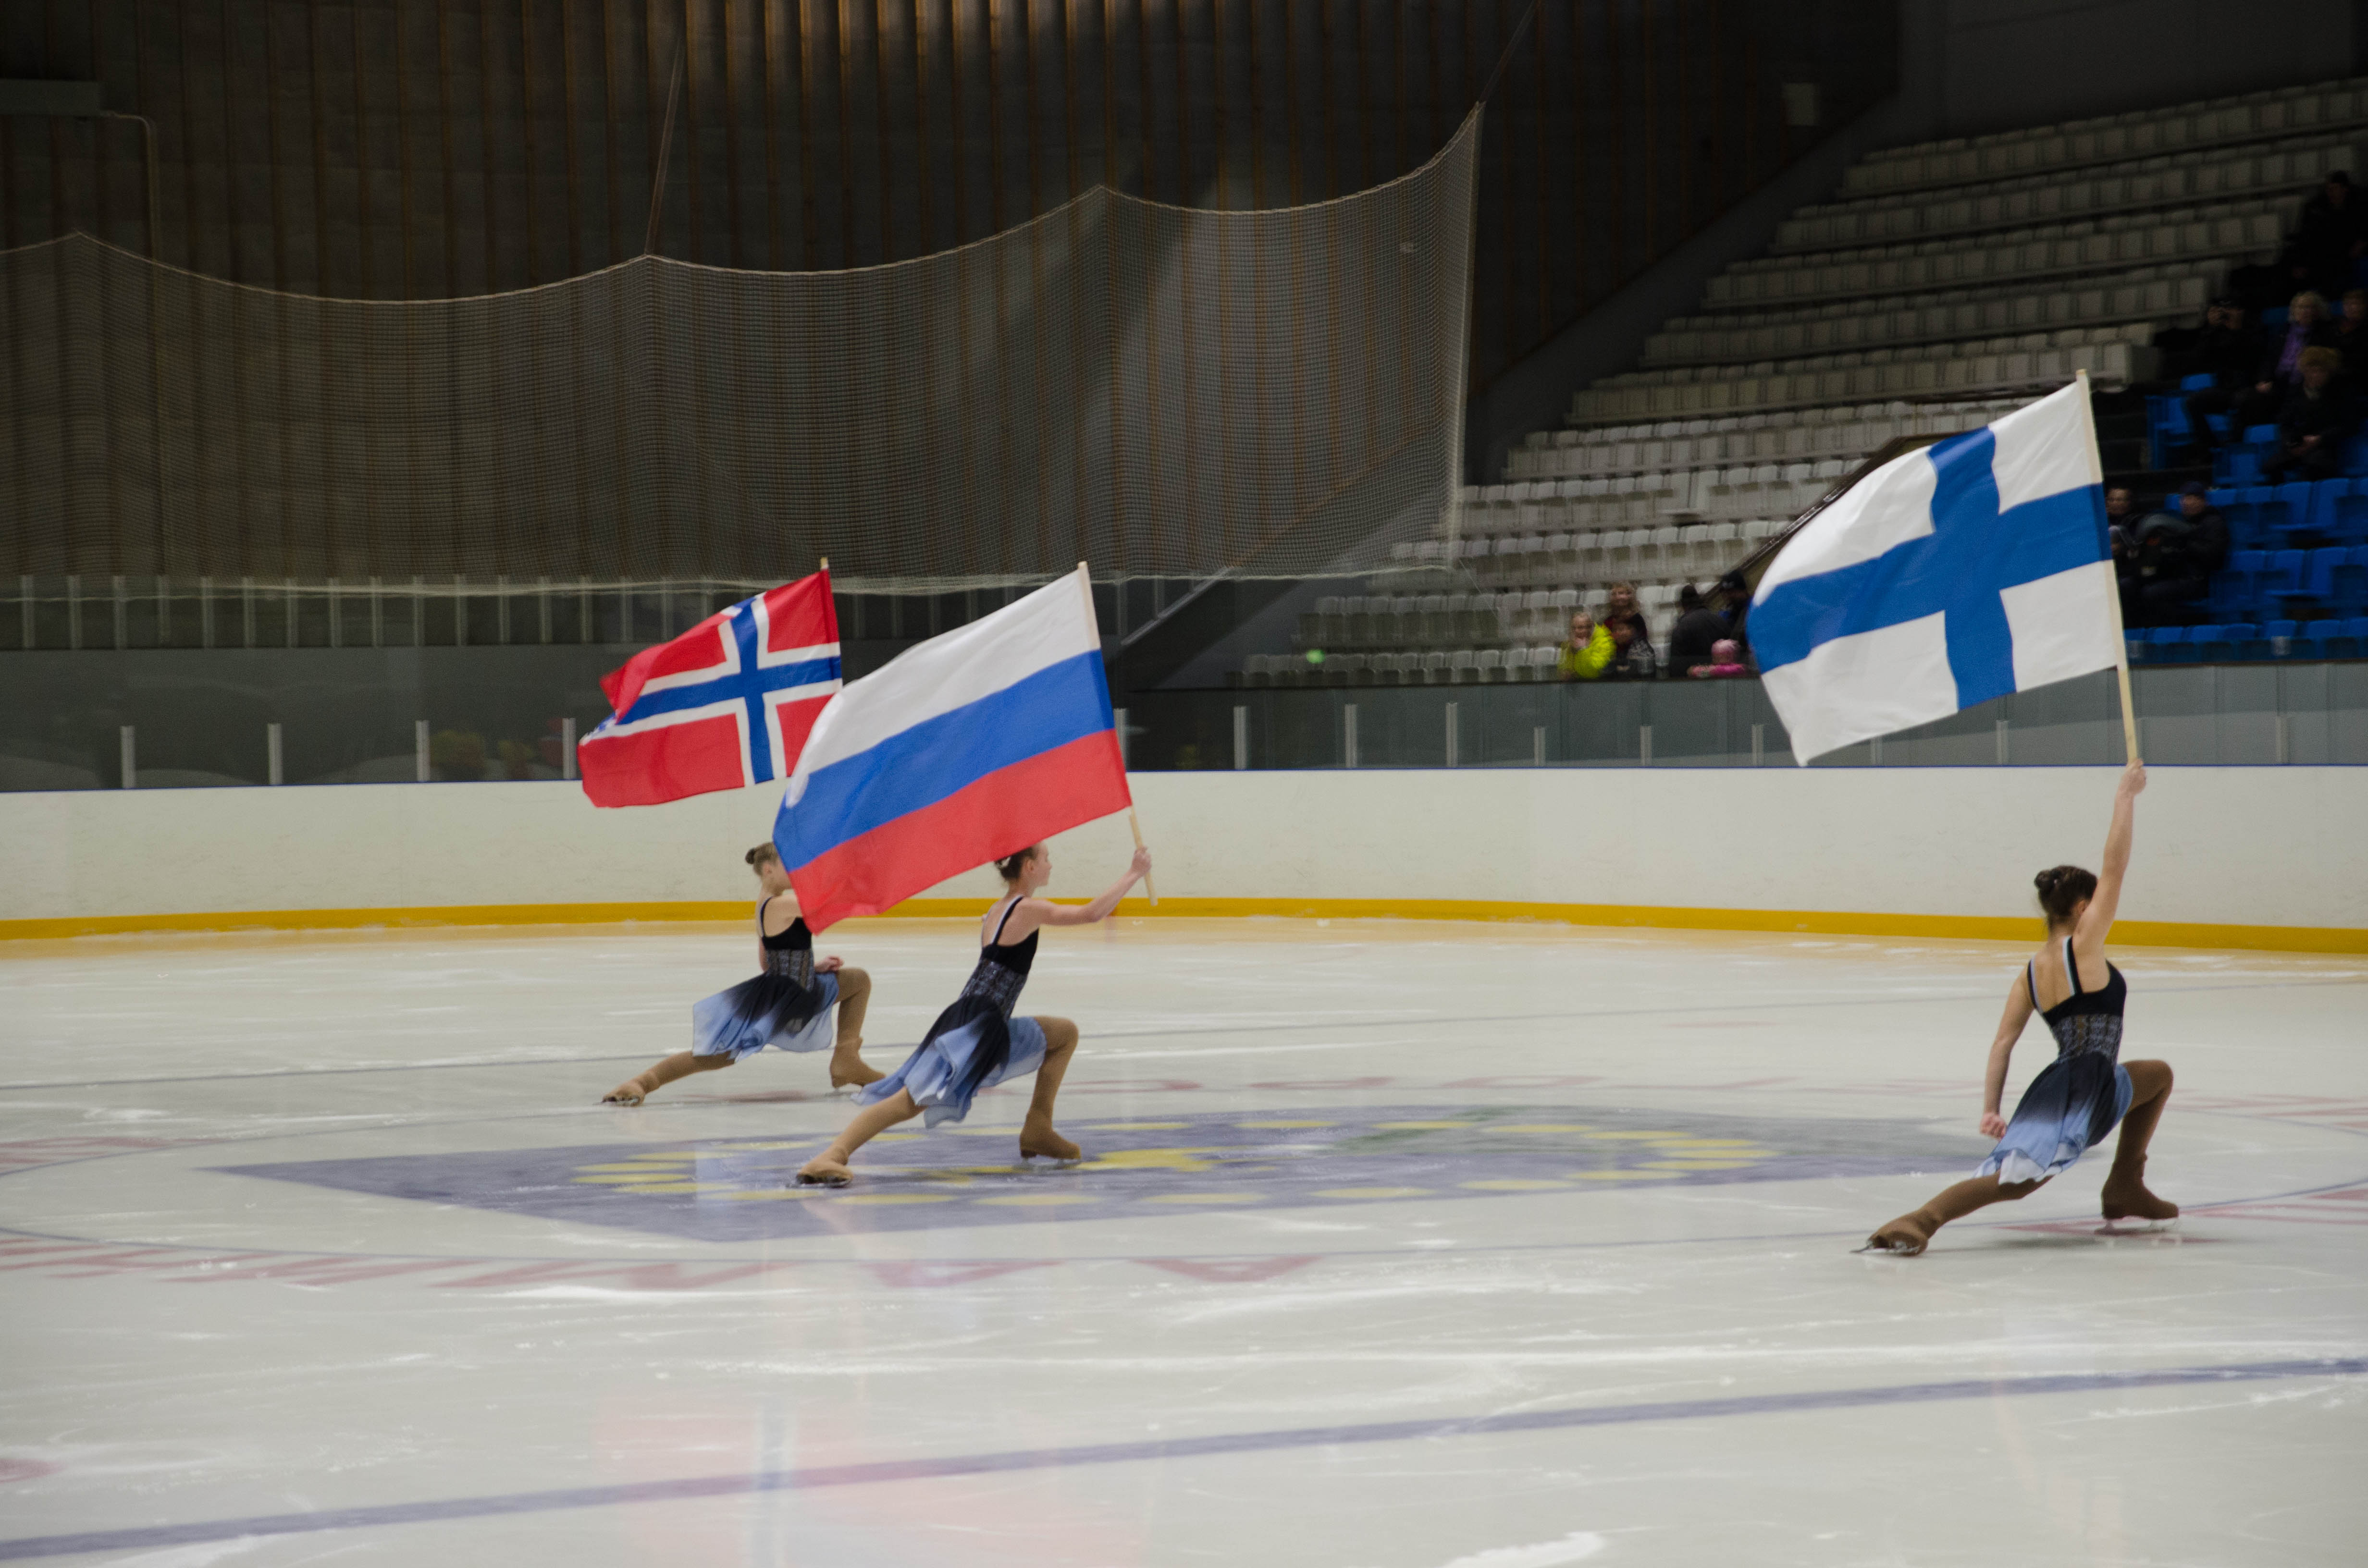 Opening ceremony in Olenegorsk 2013 Foto: Claus